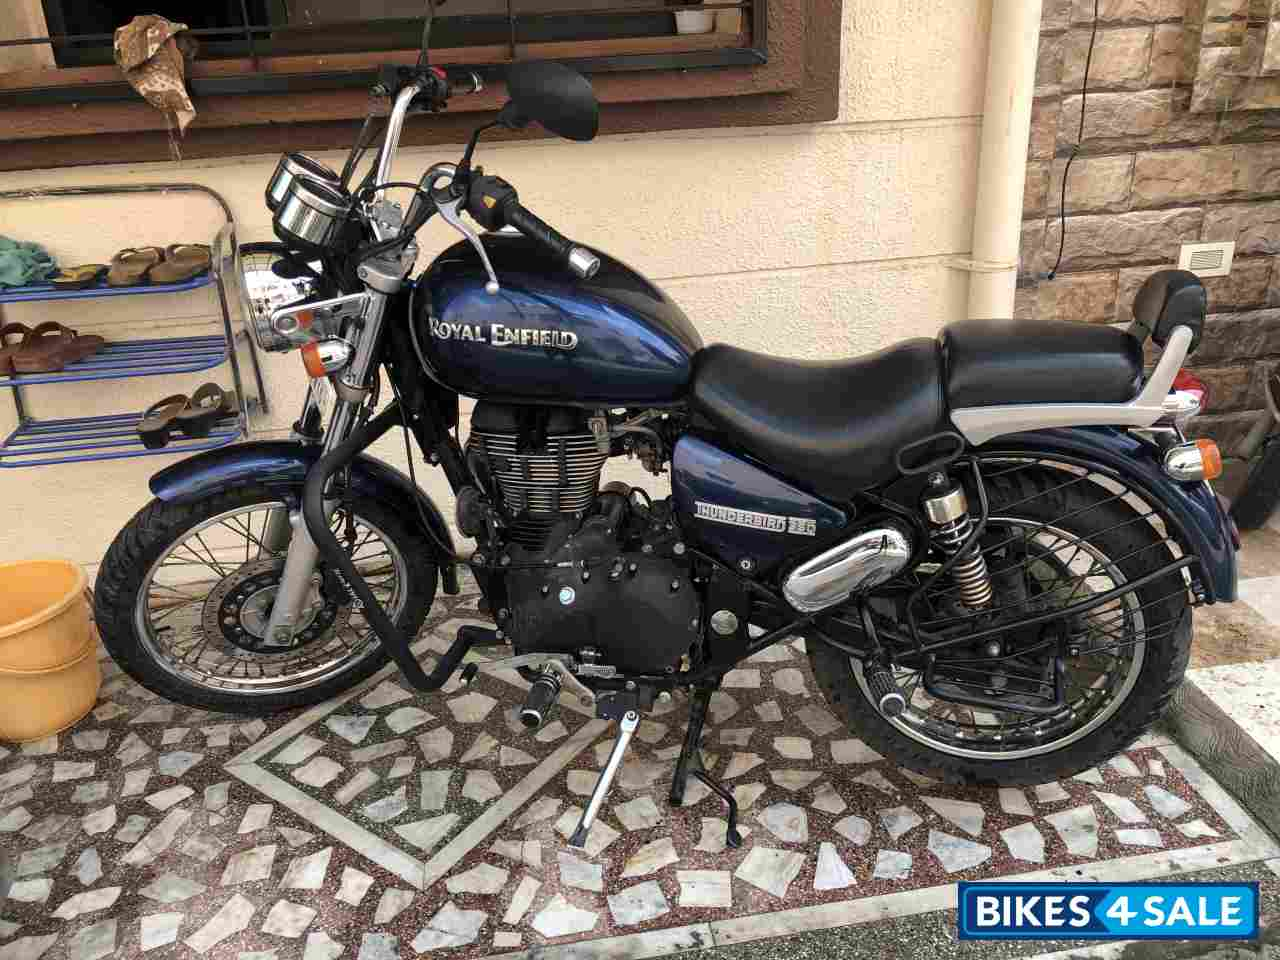 Marine Blue Royal Enfield Thunderbird 350